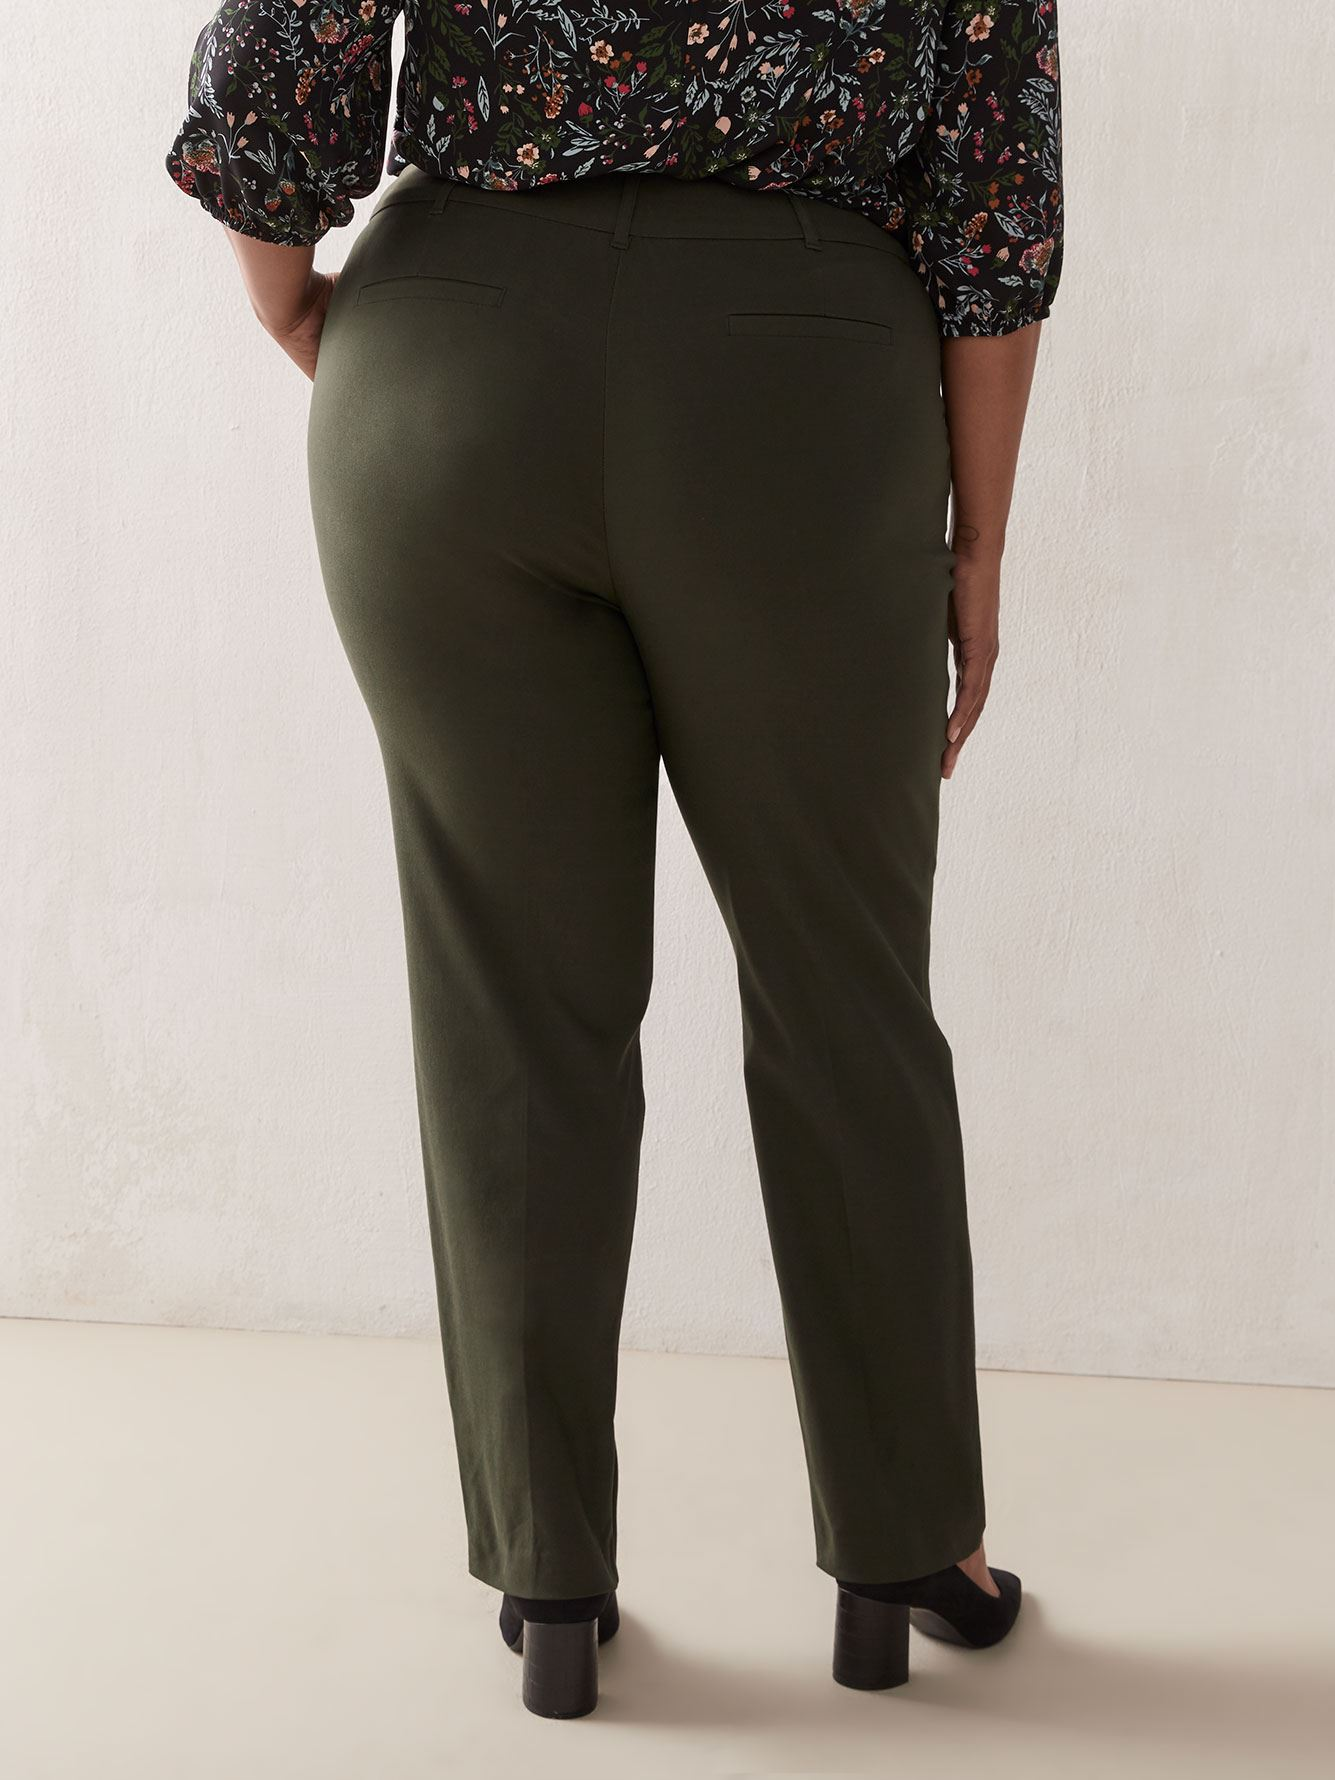 Savvy, Petite, Universal Fit Straight Leg Pant - In Every Story